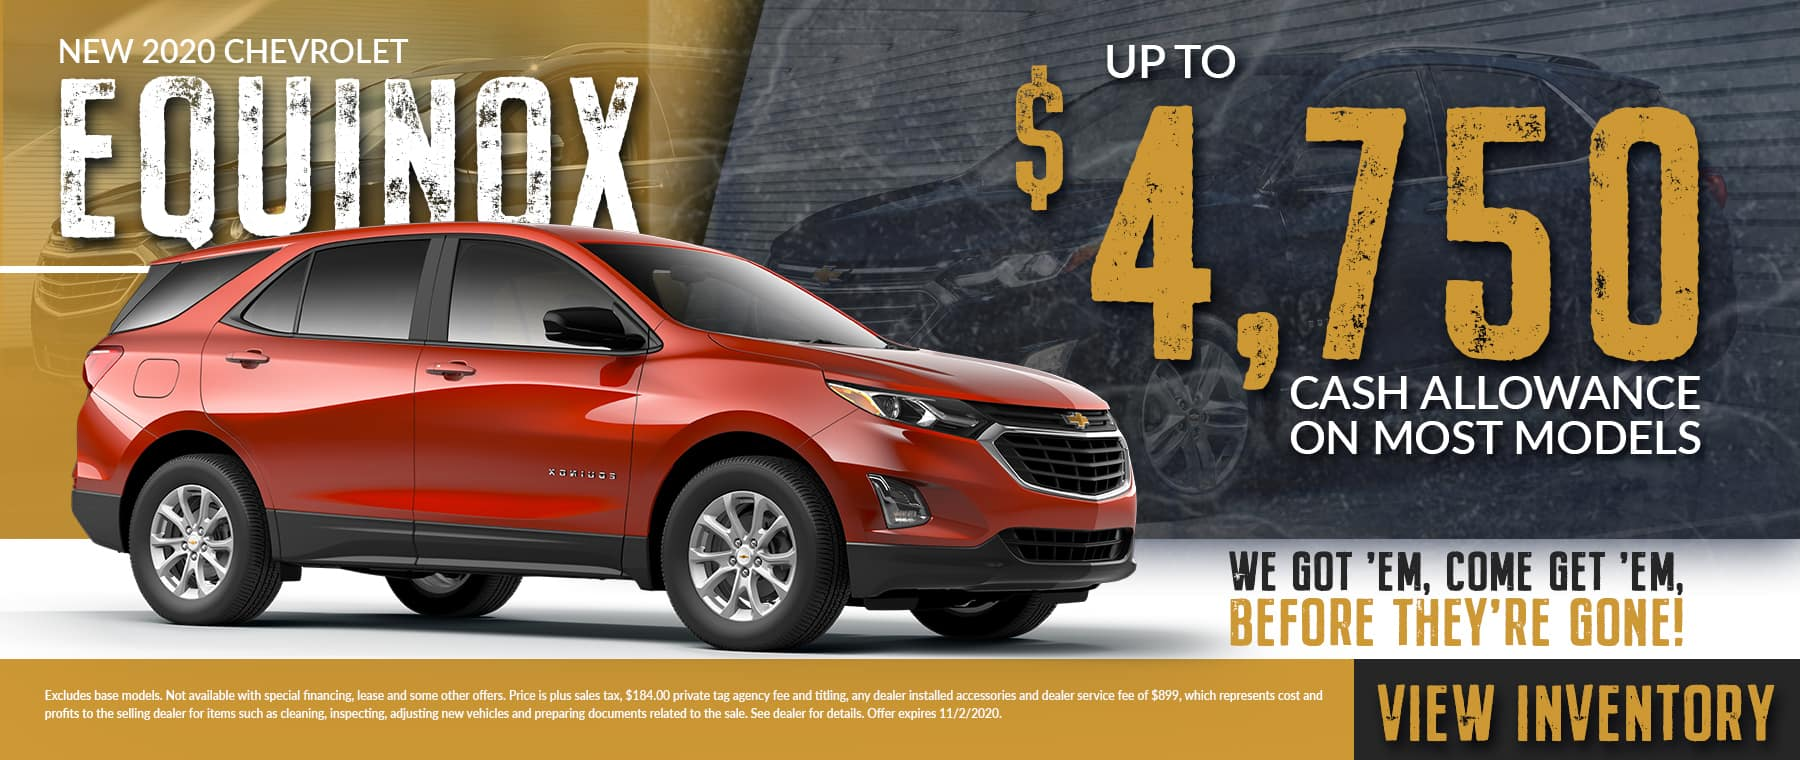 We Got 'Em, Come Get 'Em, Before They're Gone | New 2020 Chevrolet Equinox | Up To $4,750 Cash Allowance On Most Models